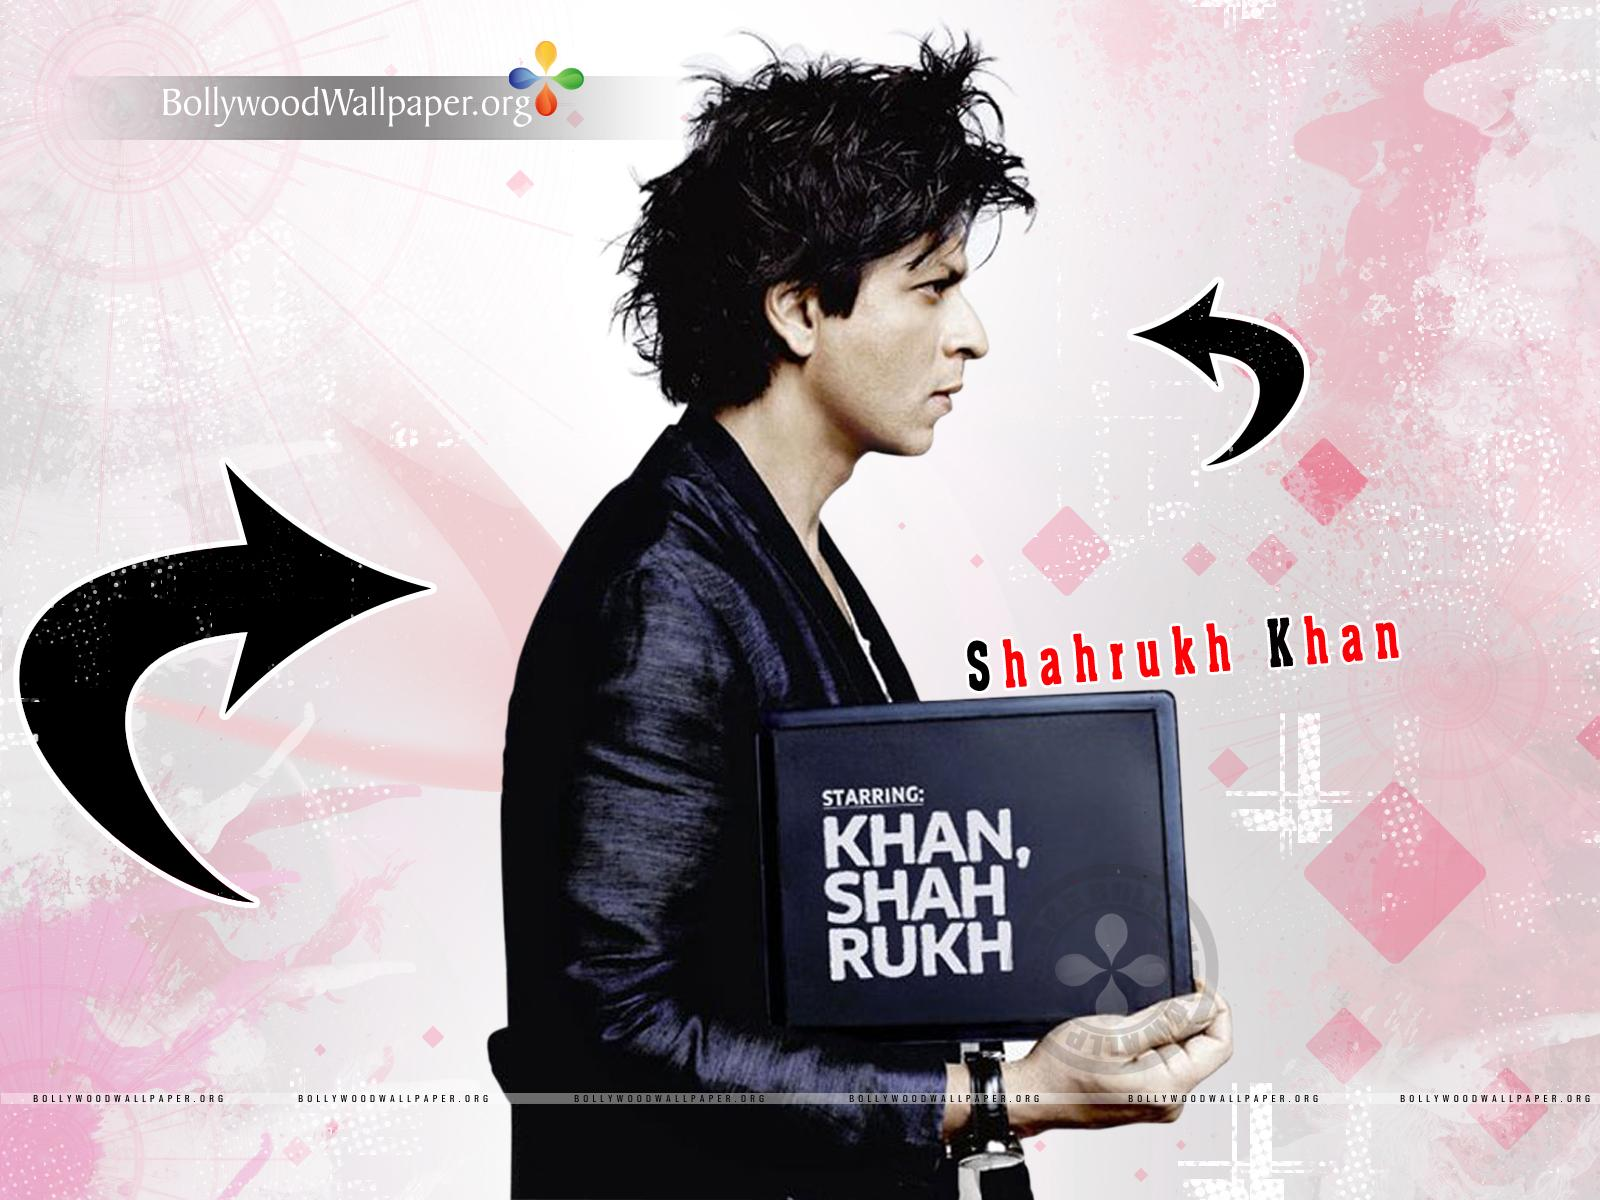 Shahrukh khan hd wallpaper - Shahrukh khan cool wallpaper ...